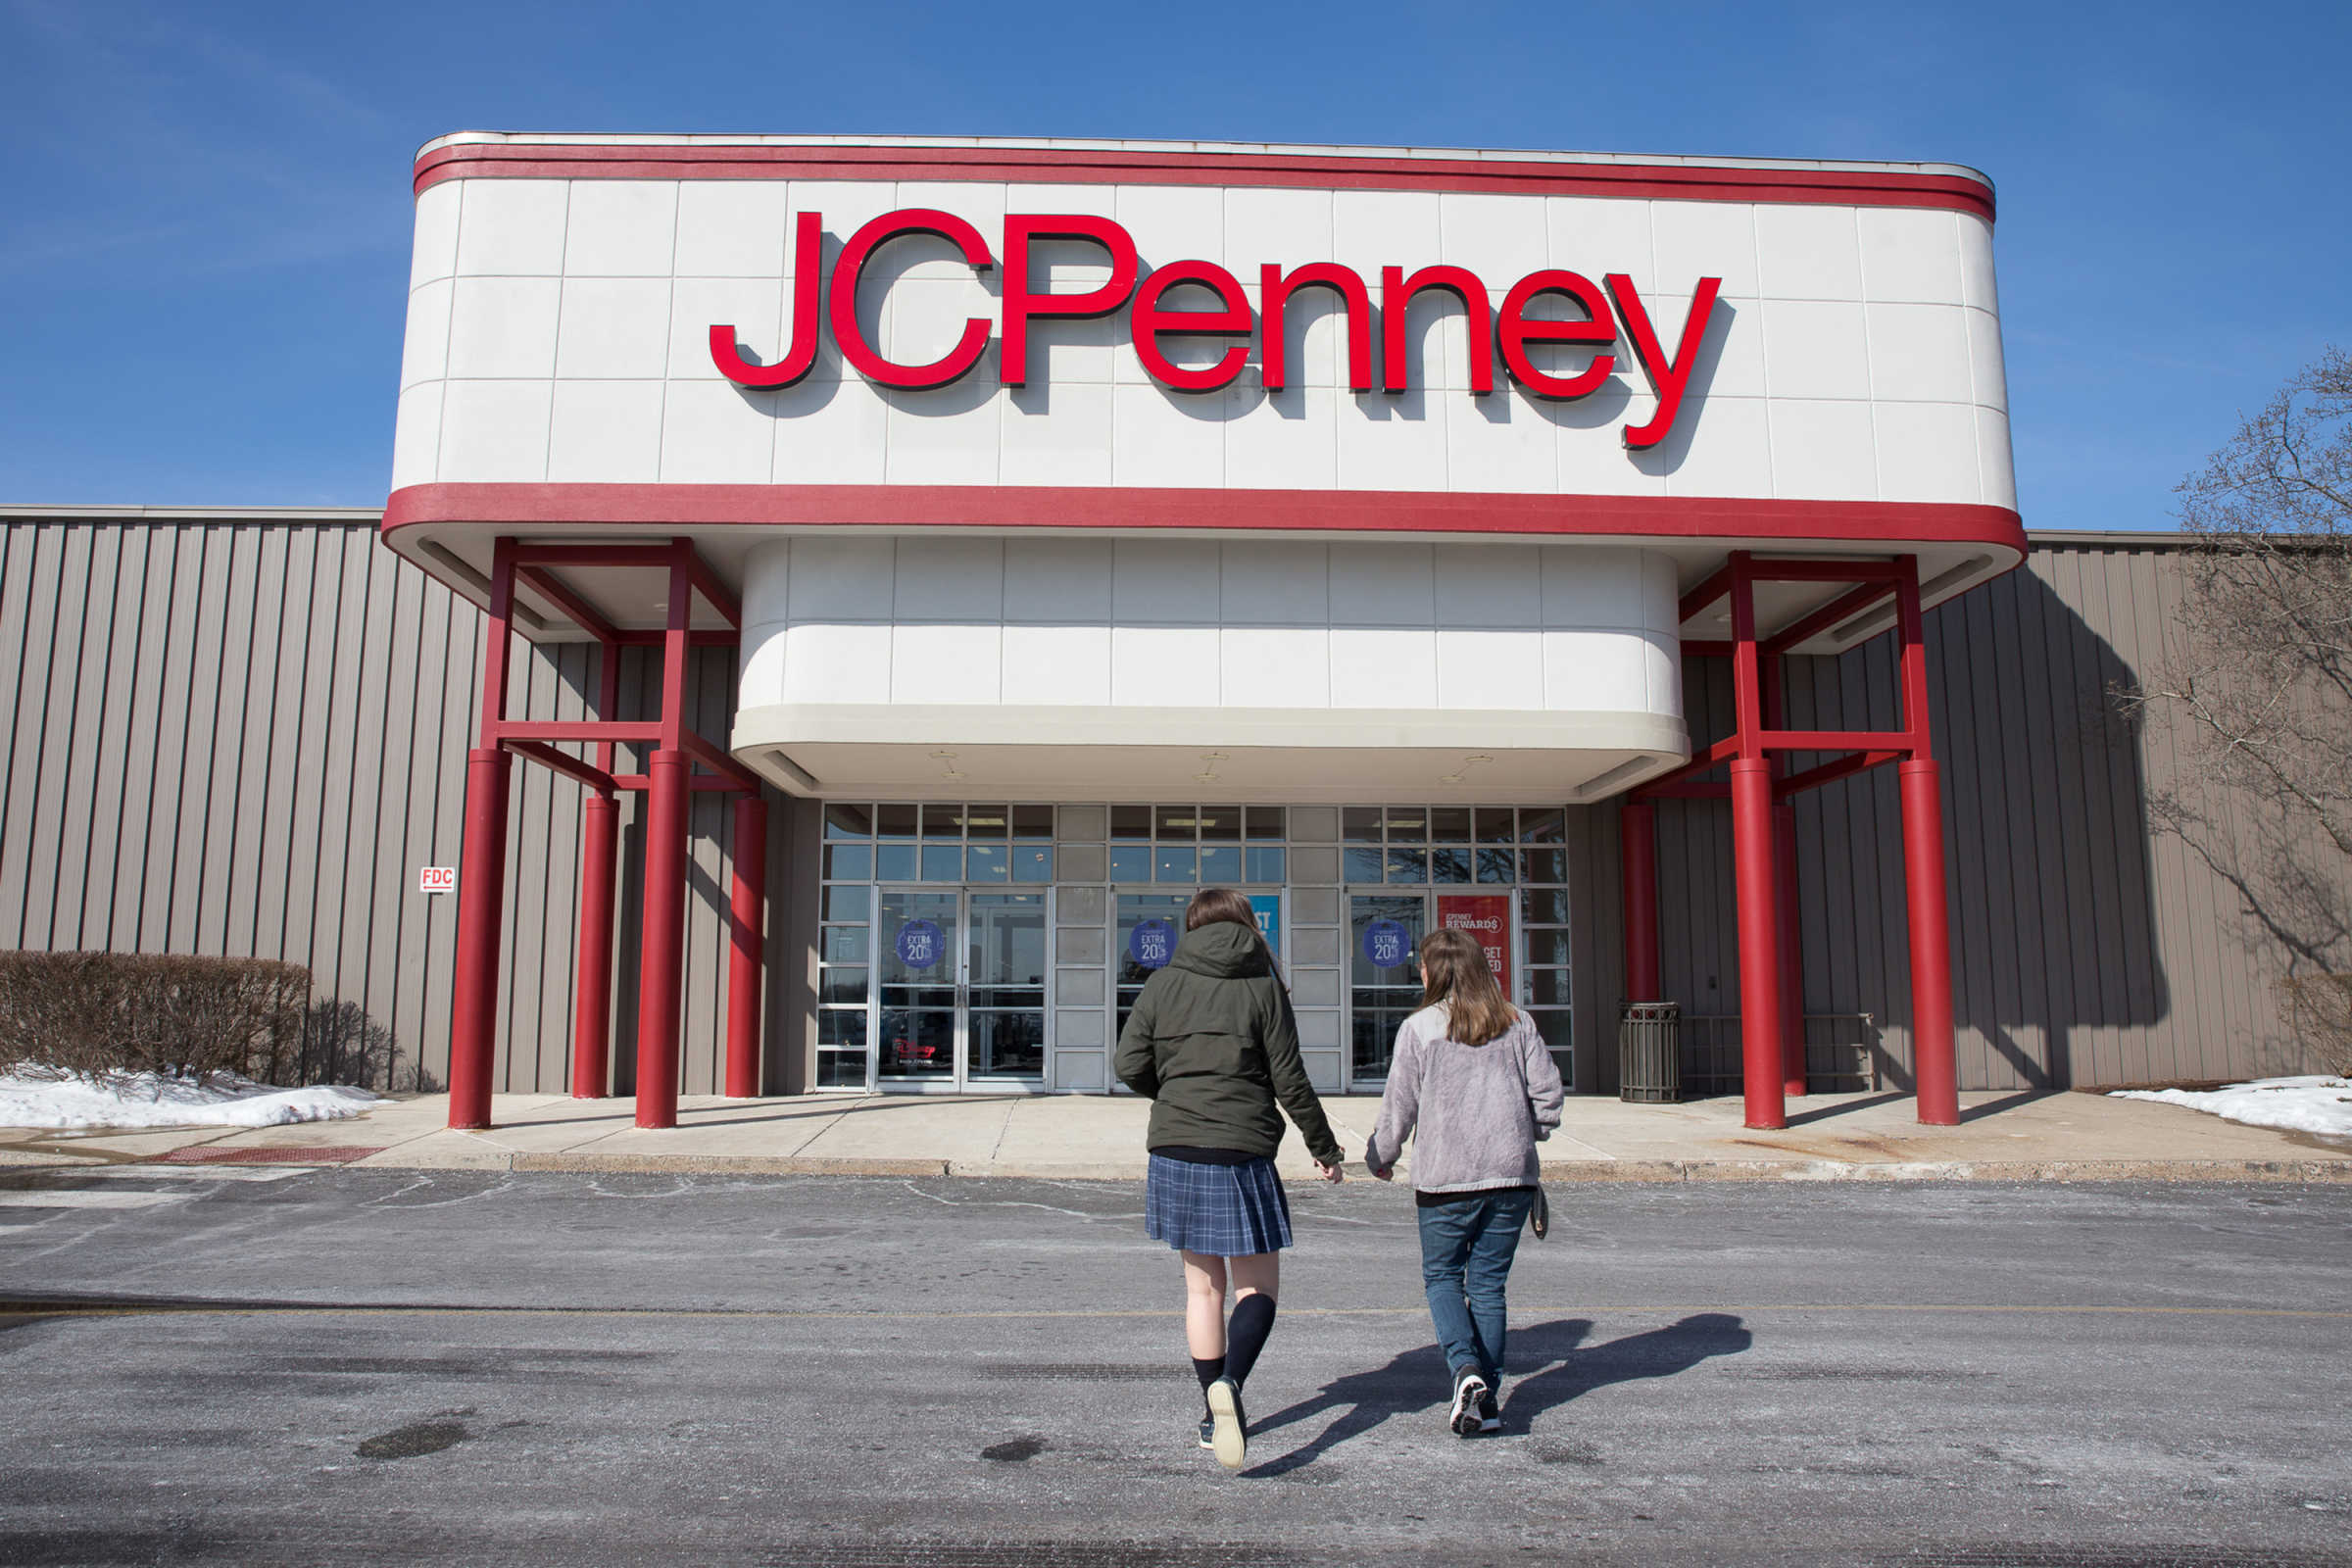 JCPenney CEO Marvin Ellison is leaving to be the head of Lowe's. YouTube/JCPenney. JCPenney's stock price fell by as much as 8% on Tuesday morning following news that CEO Marvin Ellison would.